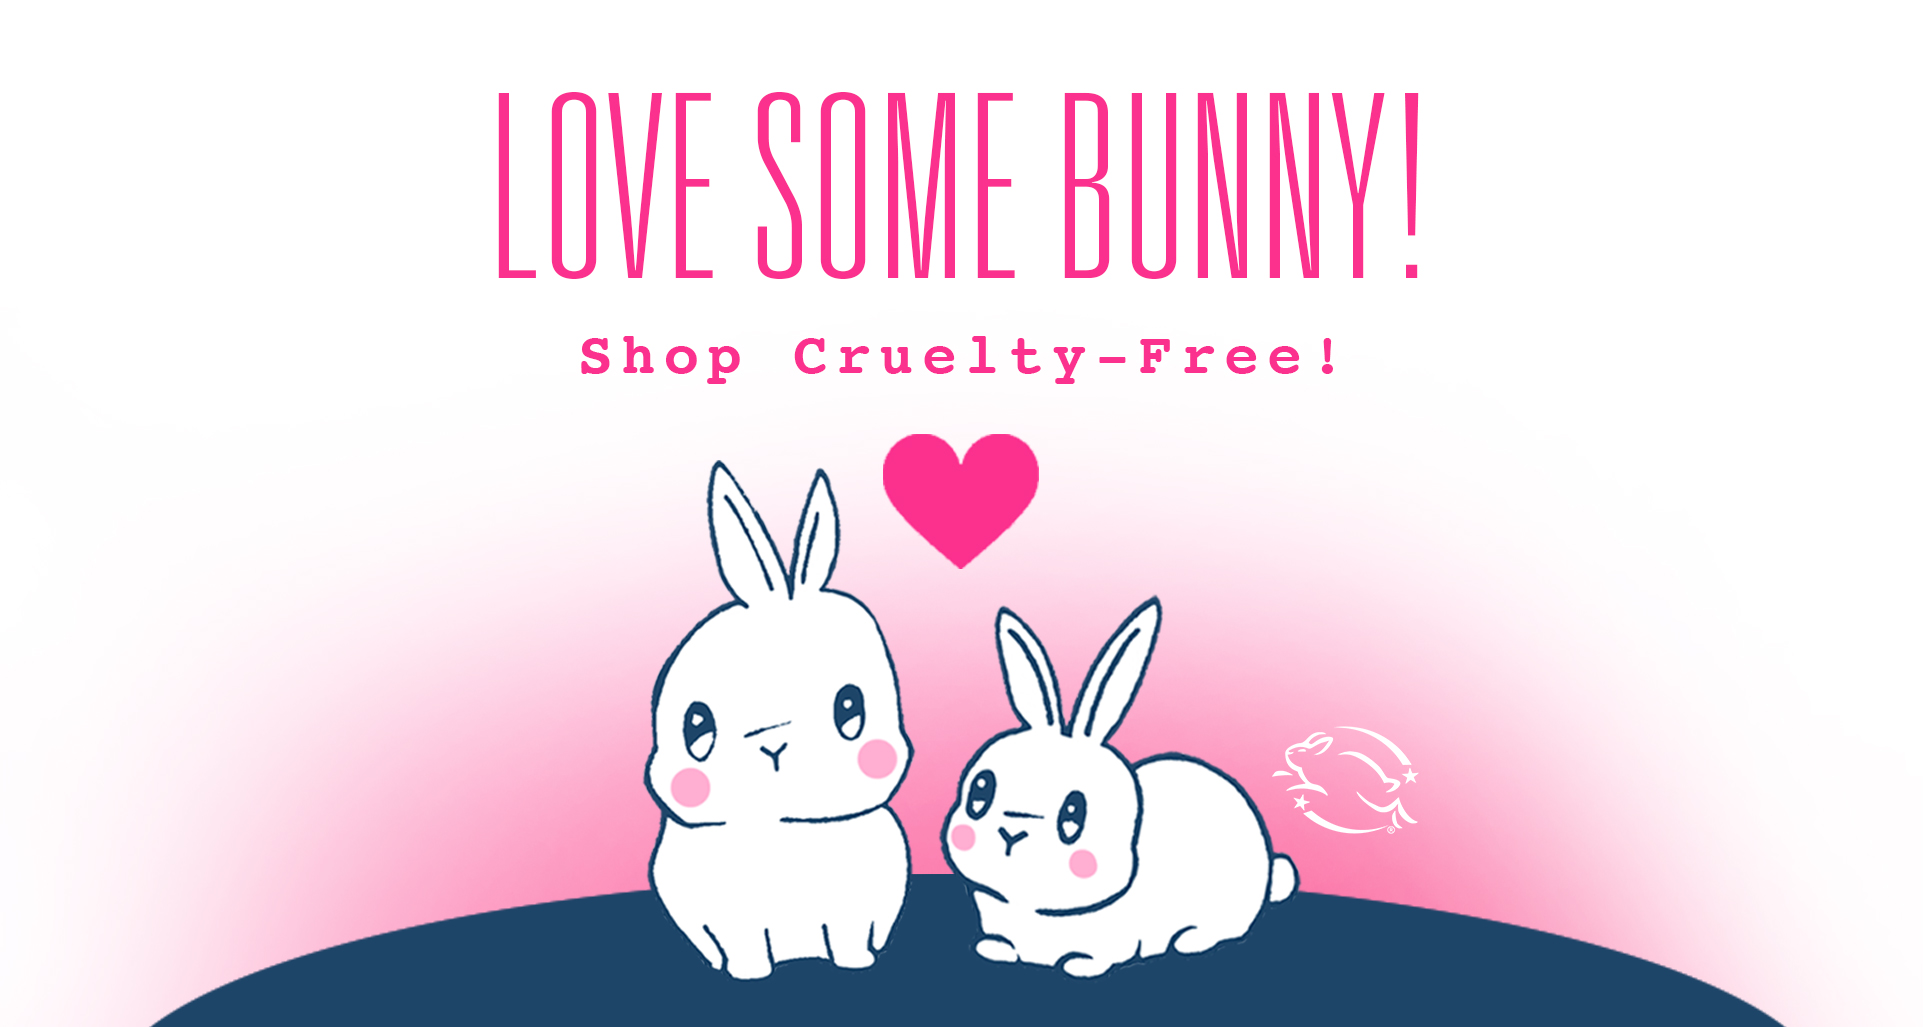 Love Some Bunny! Shop Cruelty-Free!